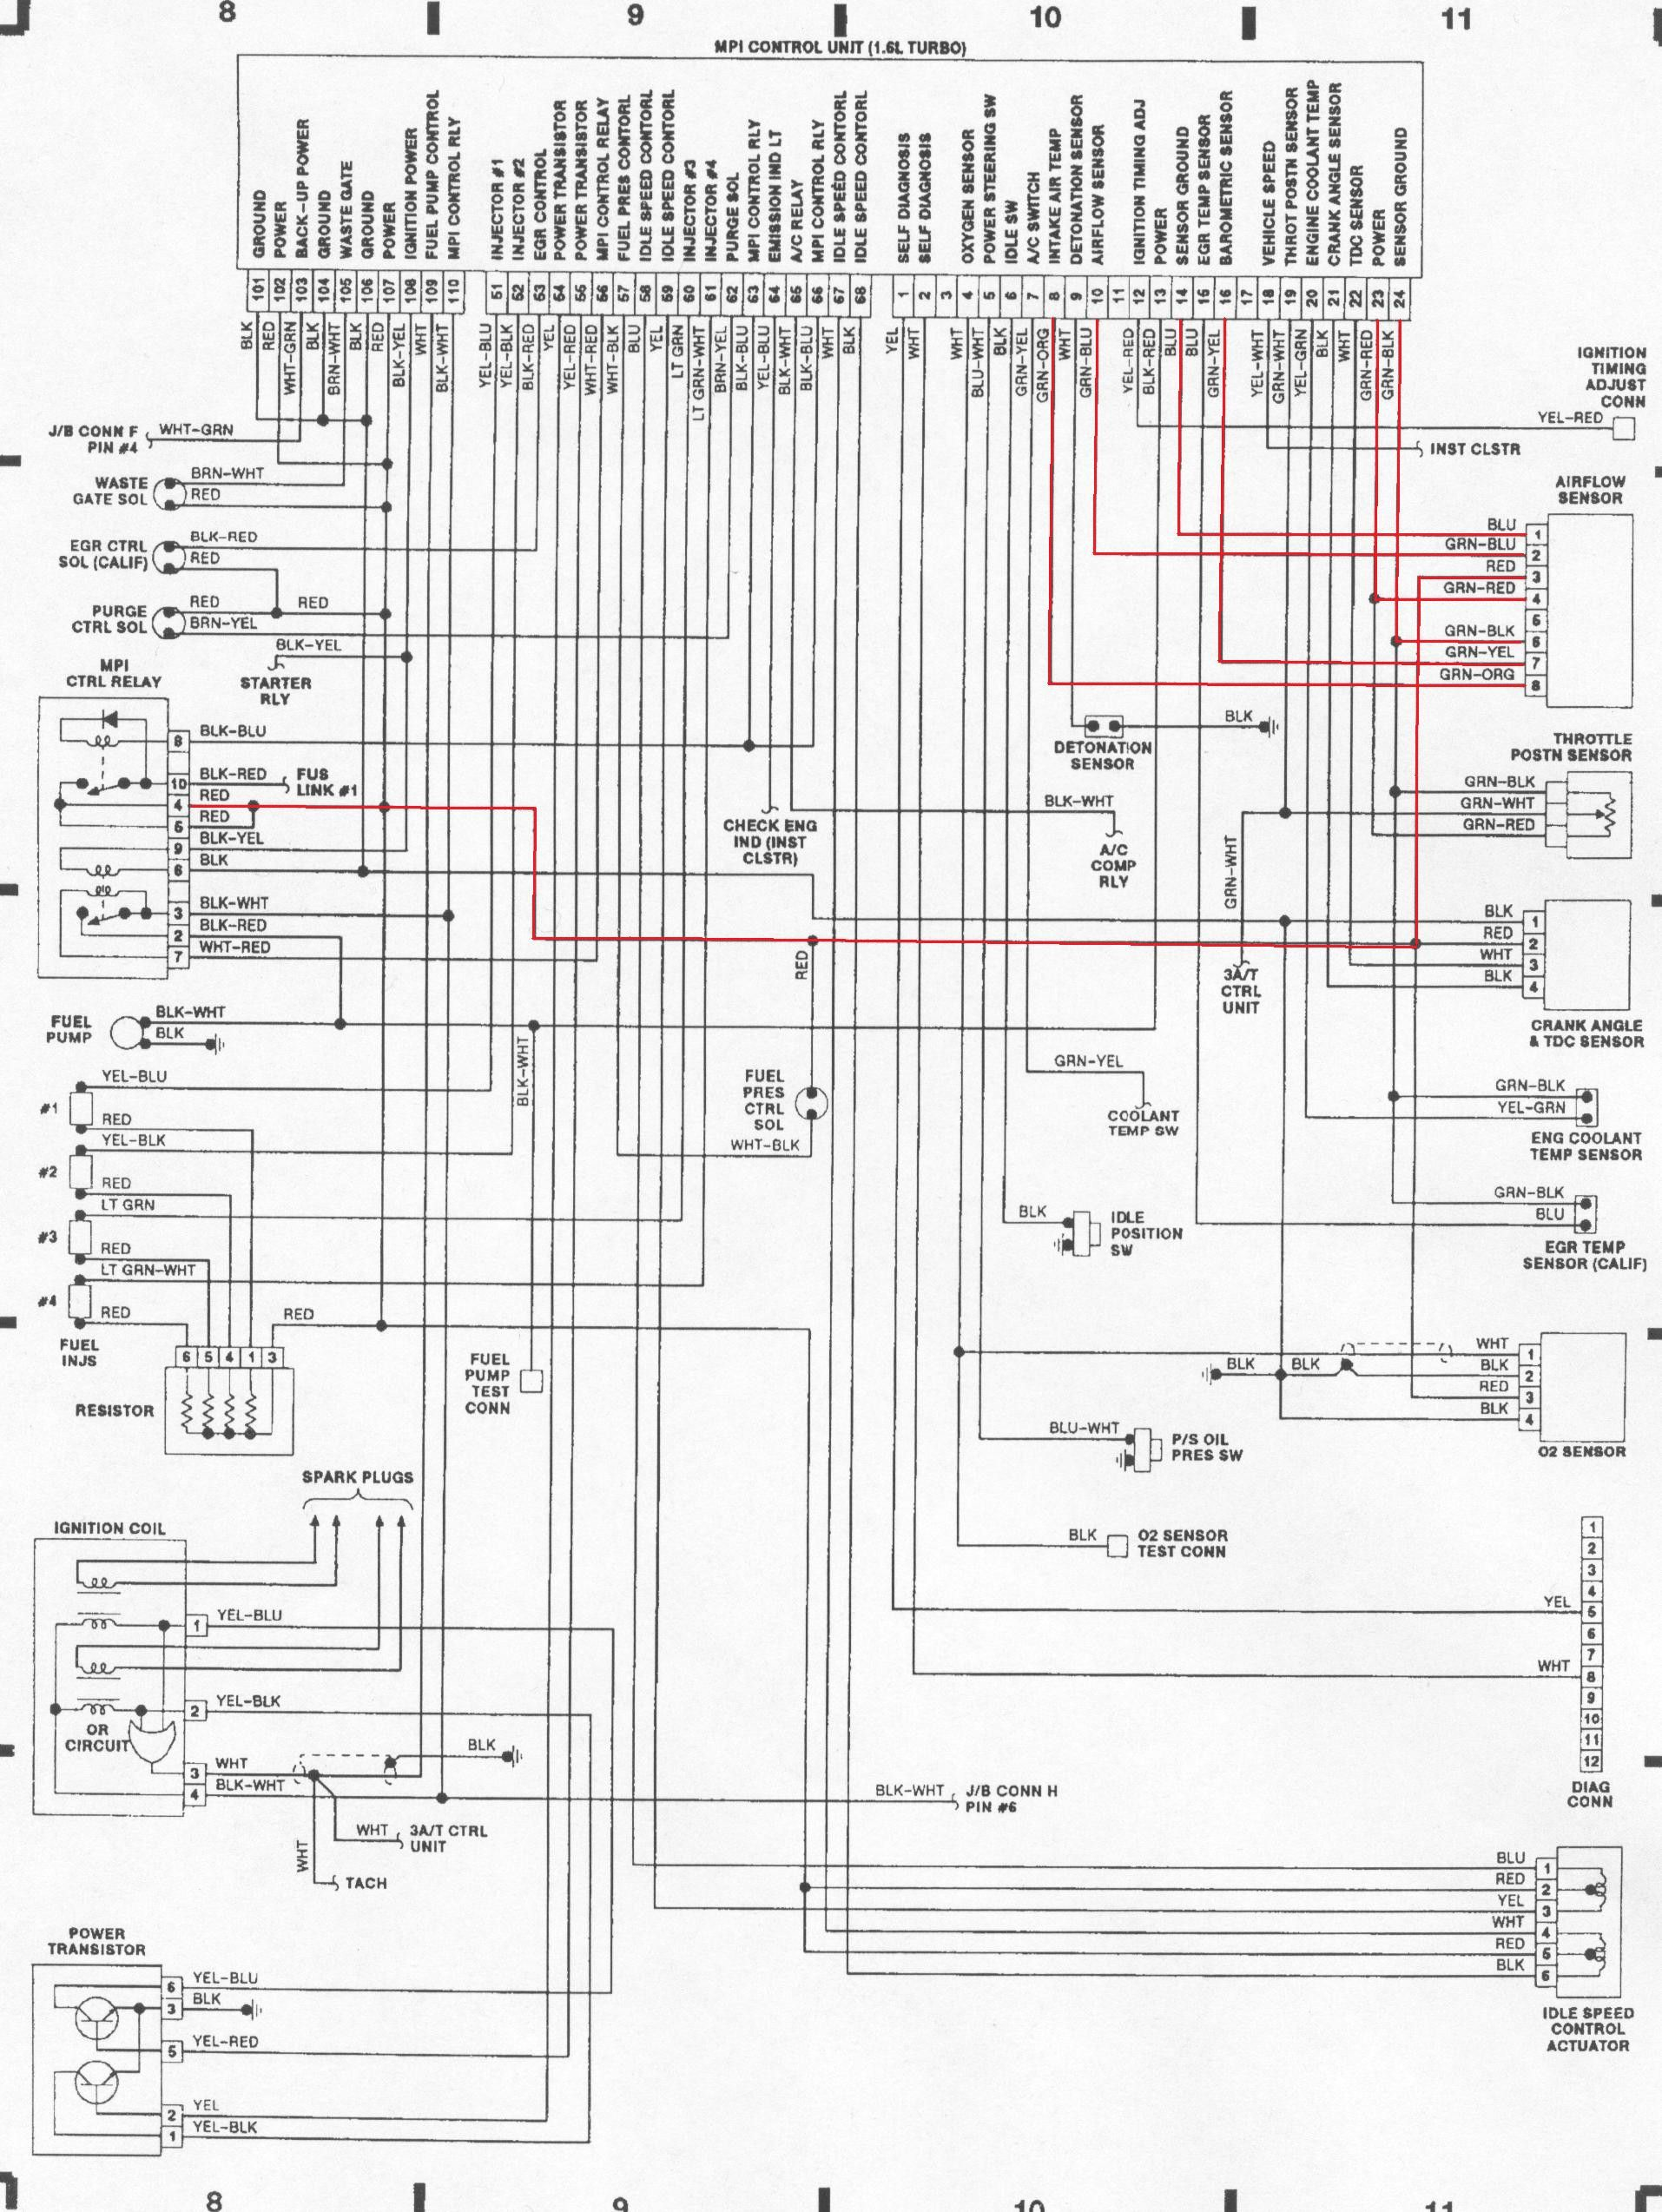 Wiring Diagram 4g15 Pdf Virtual Fretboard Inside Mitsubishi Mirage Mitsubishi Mirage Mitsubishi Vw Super Beetle